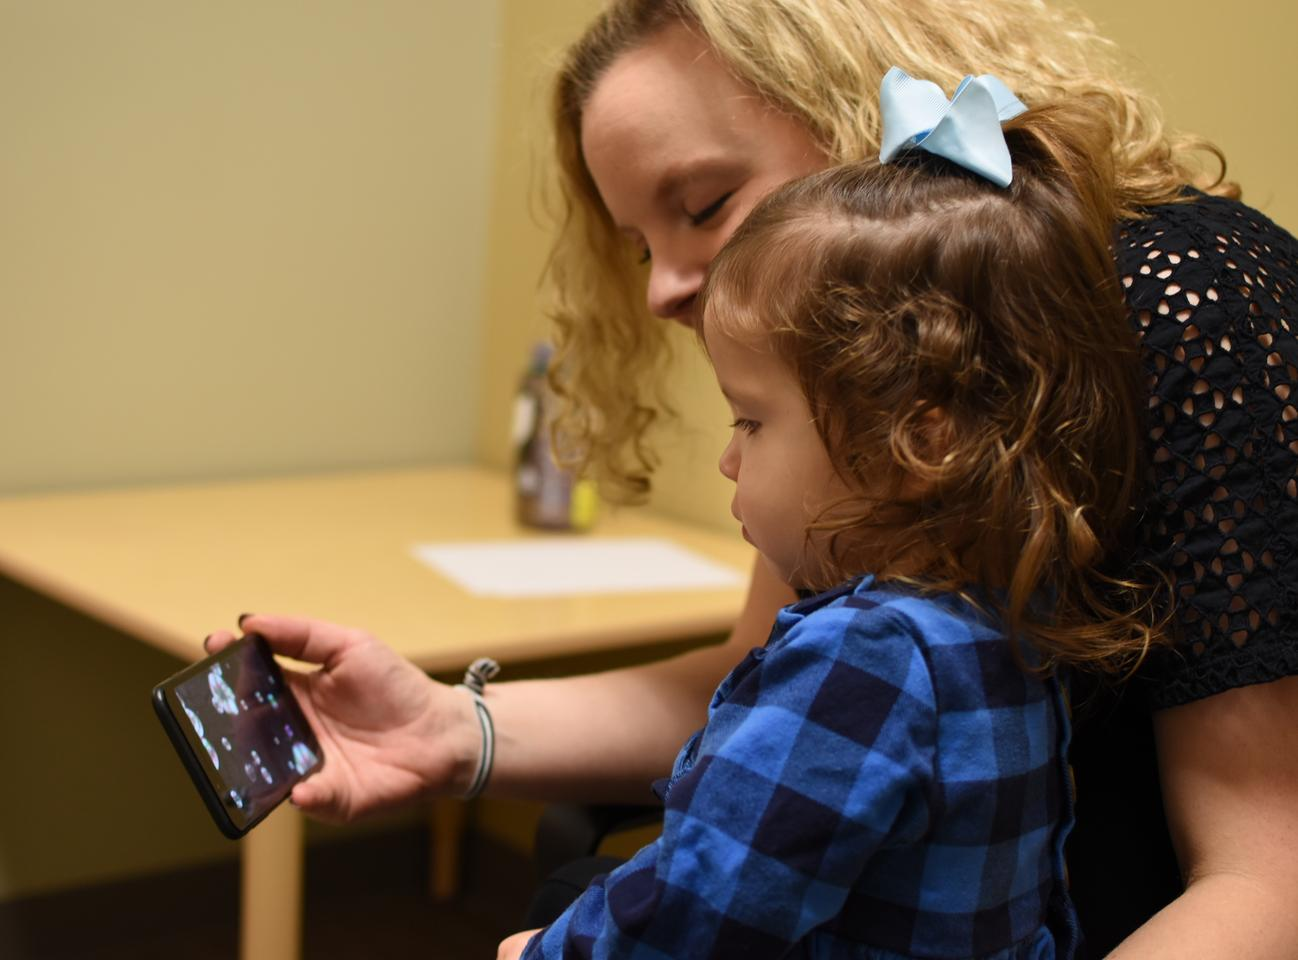 The app was tested on 993 toddlers with an average age of 21 months, which is the age at which autism spectrum disorder is often identified